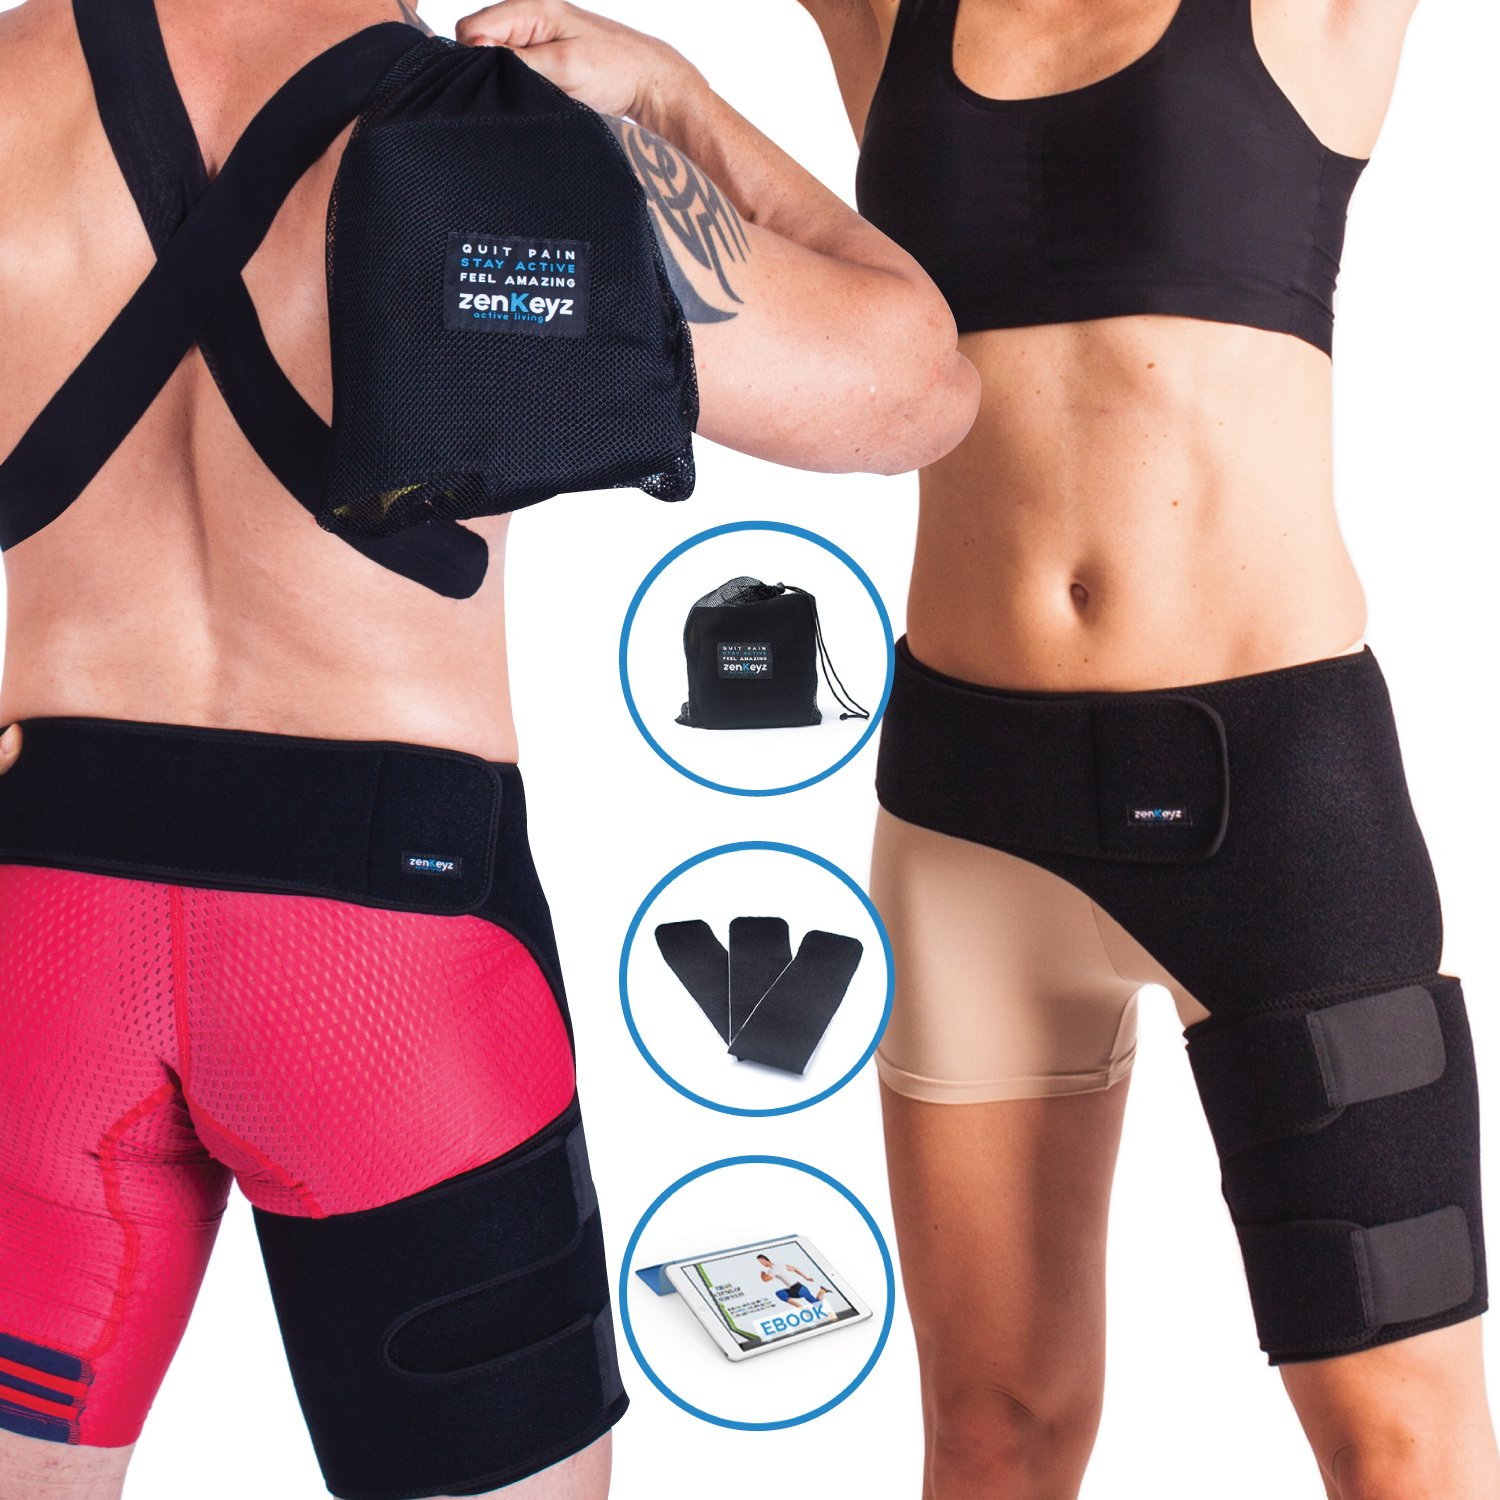 9206670dd9 Amazon.com: Groin Support and Hip Brace for Men & Women- Compression Wrap  for Thigh Quad Hamstring Joints Sciatica Nerve Pain Relief Zenkeyz Leg  Strap: ...